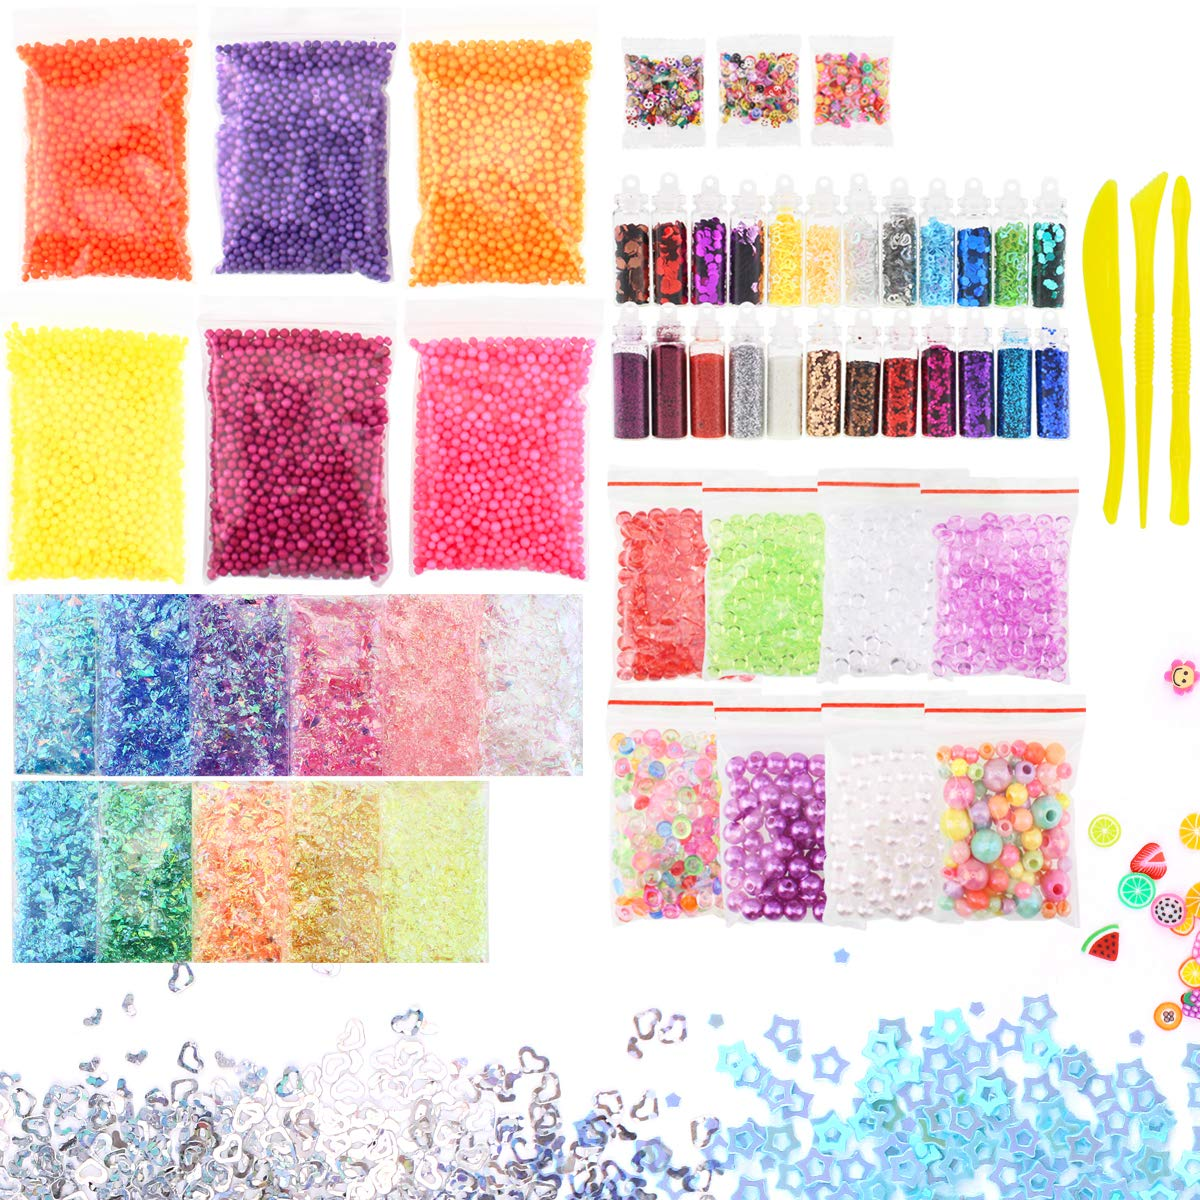 55 Pack Foam Beads for Slime-Slime Supplies Kit Include Floam Beads, Fishbowl Beads, Glitter Jars, Fruit Slices, Rainbow Pearl,Colorful Sugar Paper Accessories, Slime Tools for Slime Making DIY Craft Ordenado